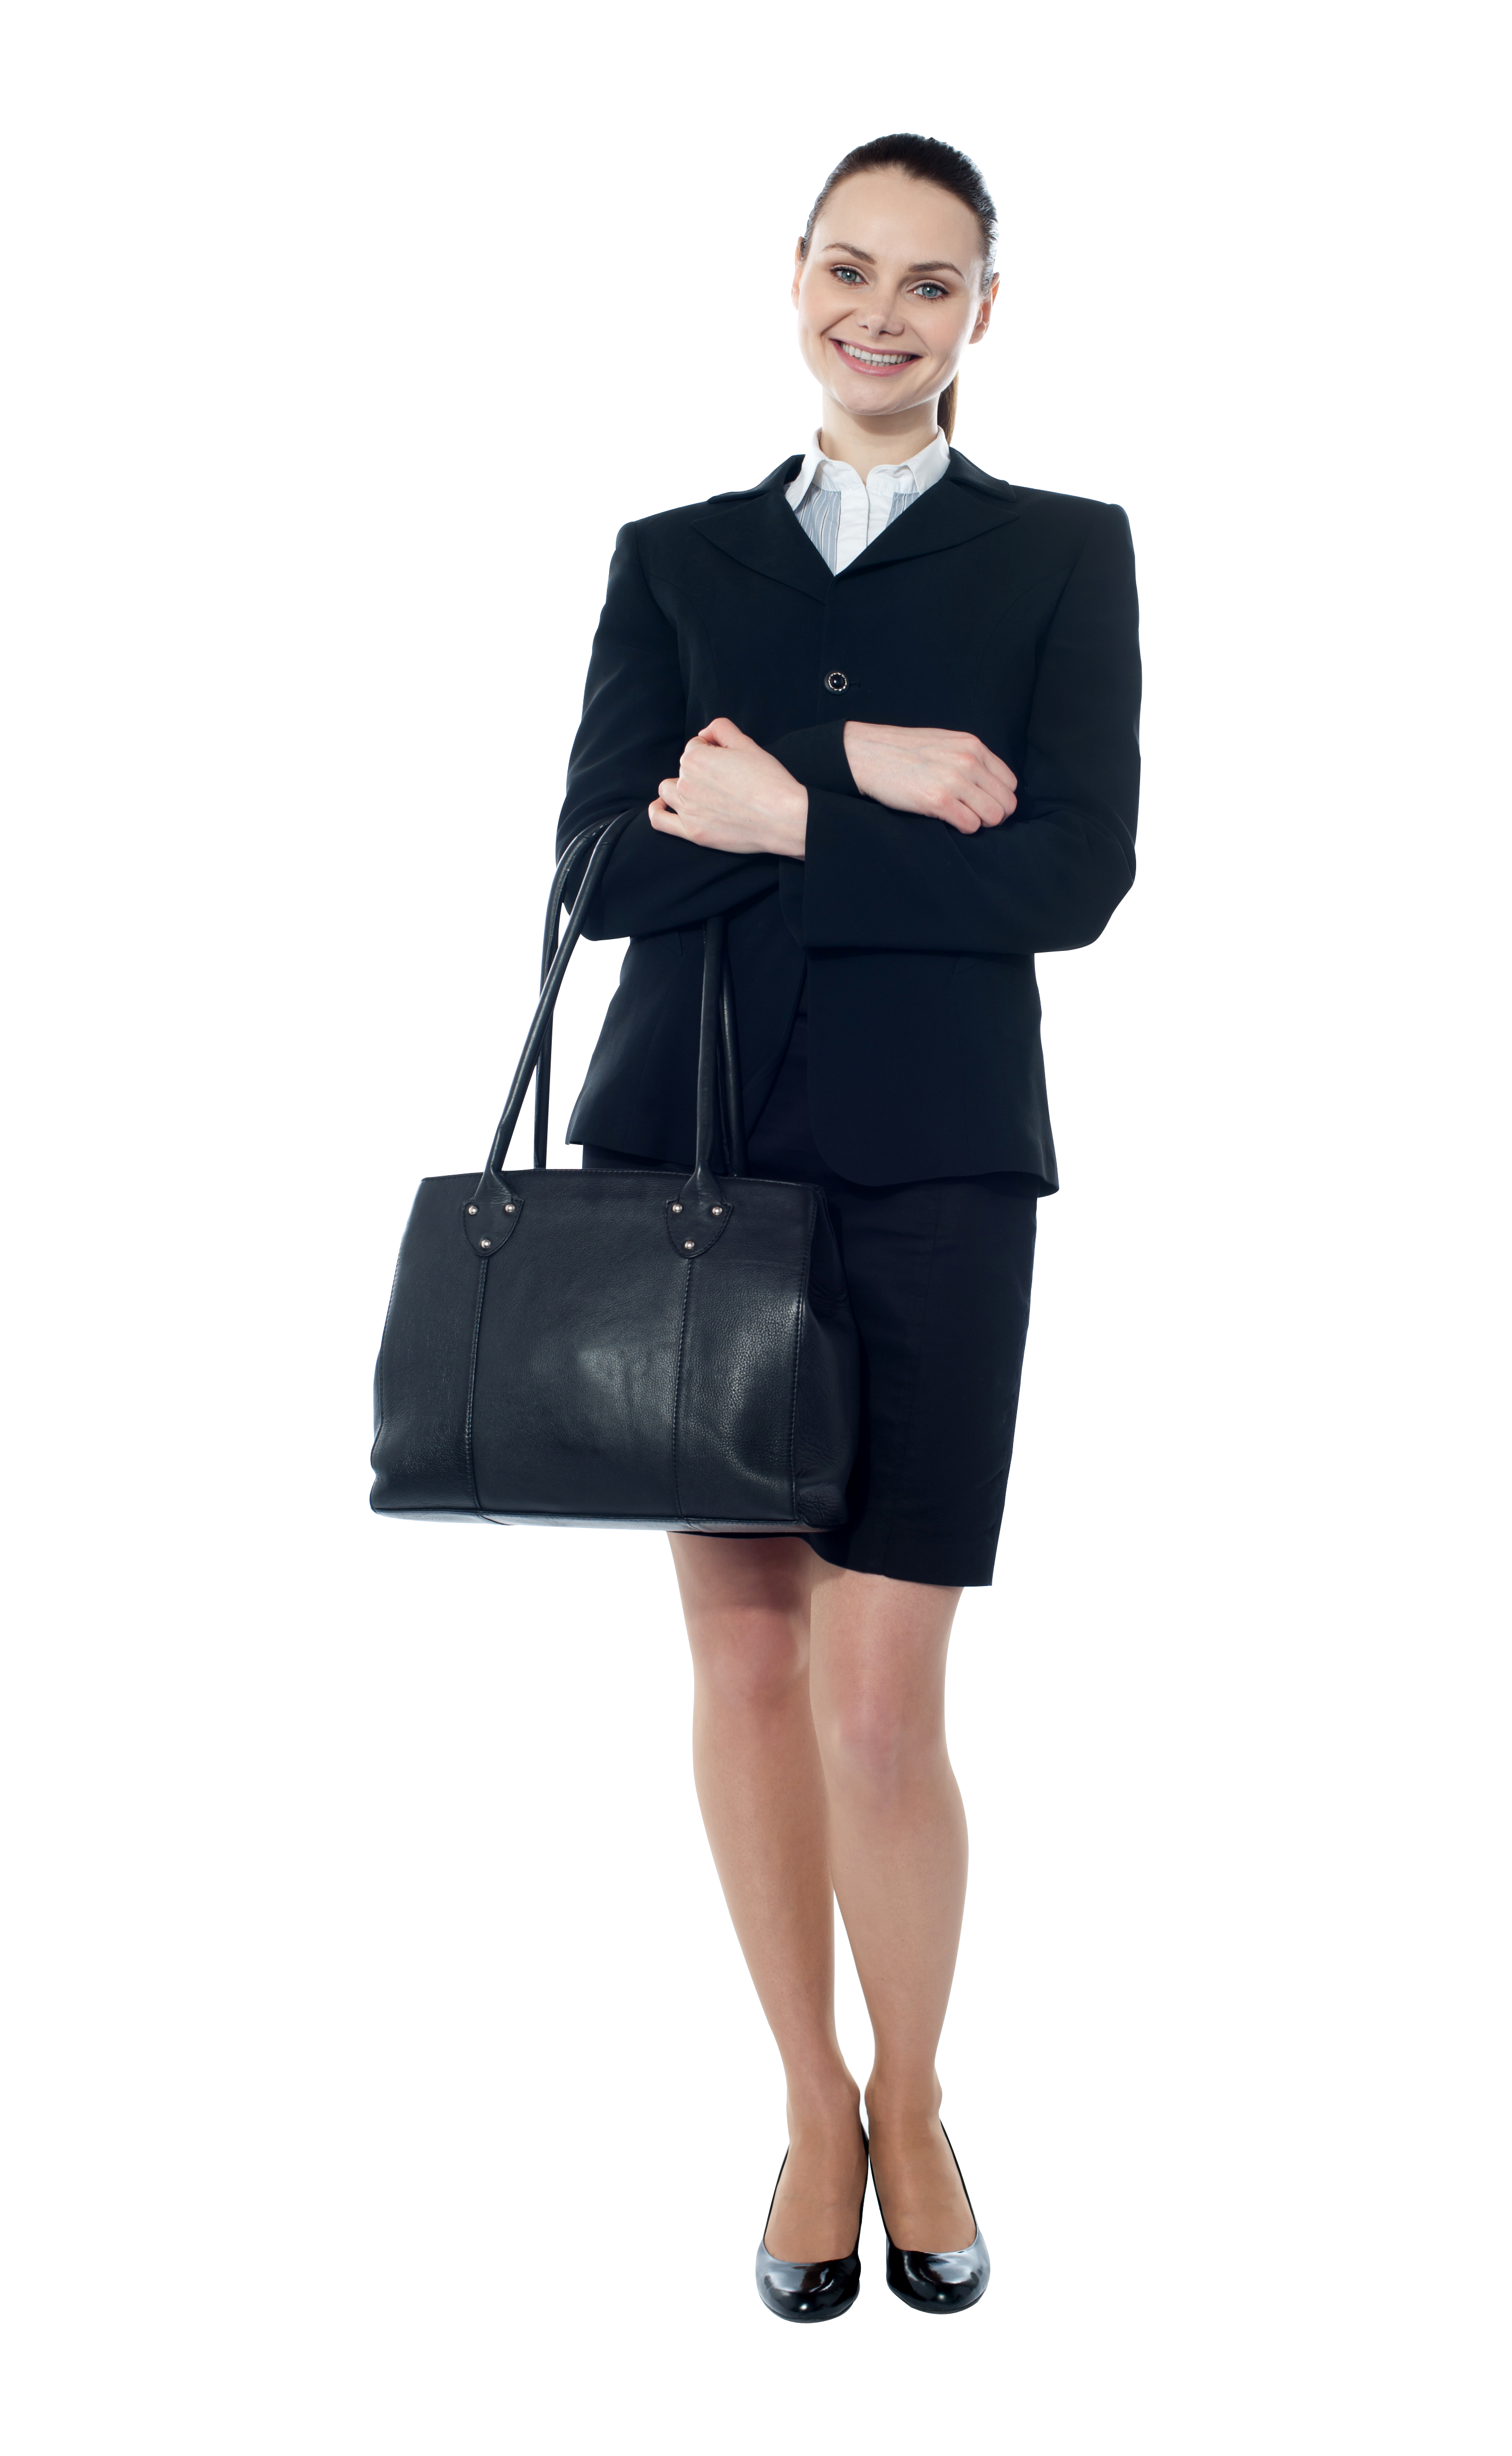 Business woman standing png. Women image purepng free